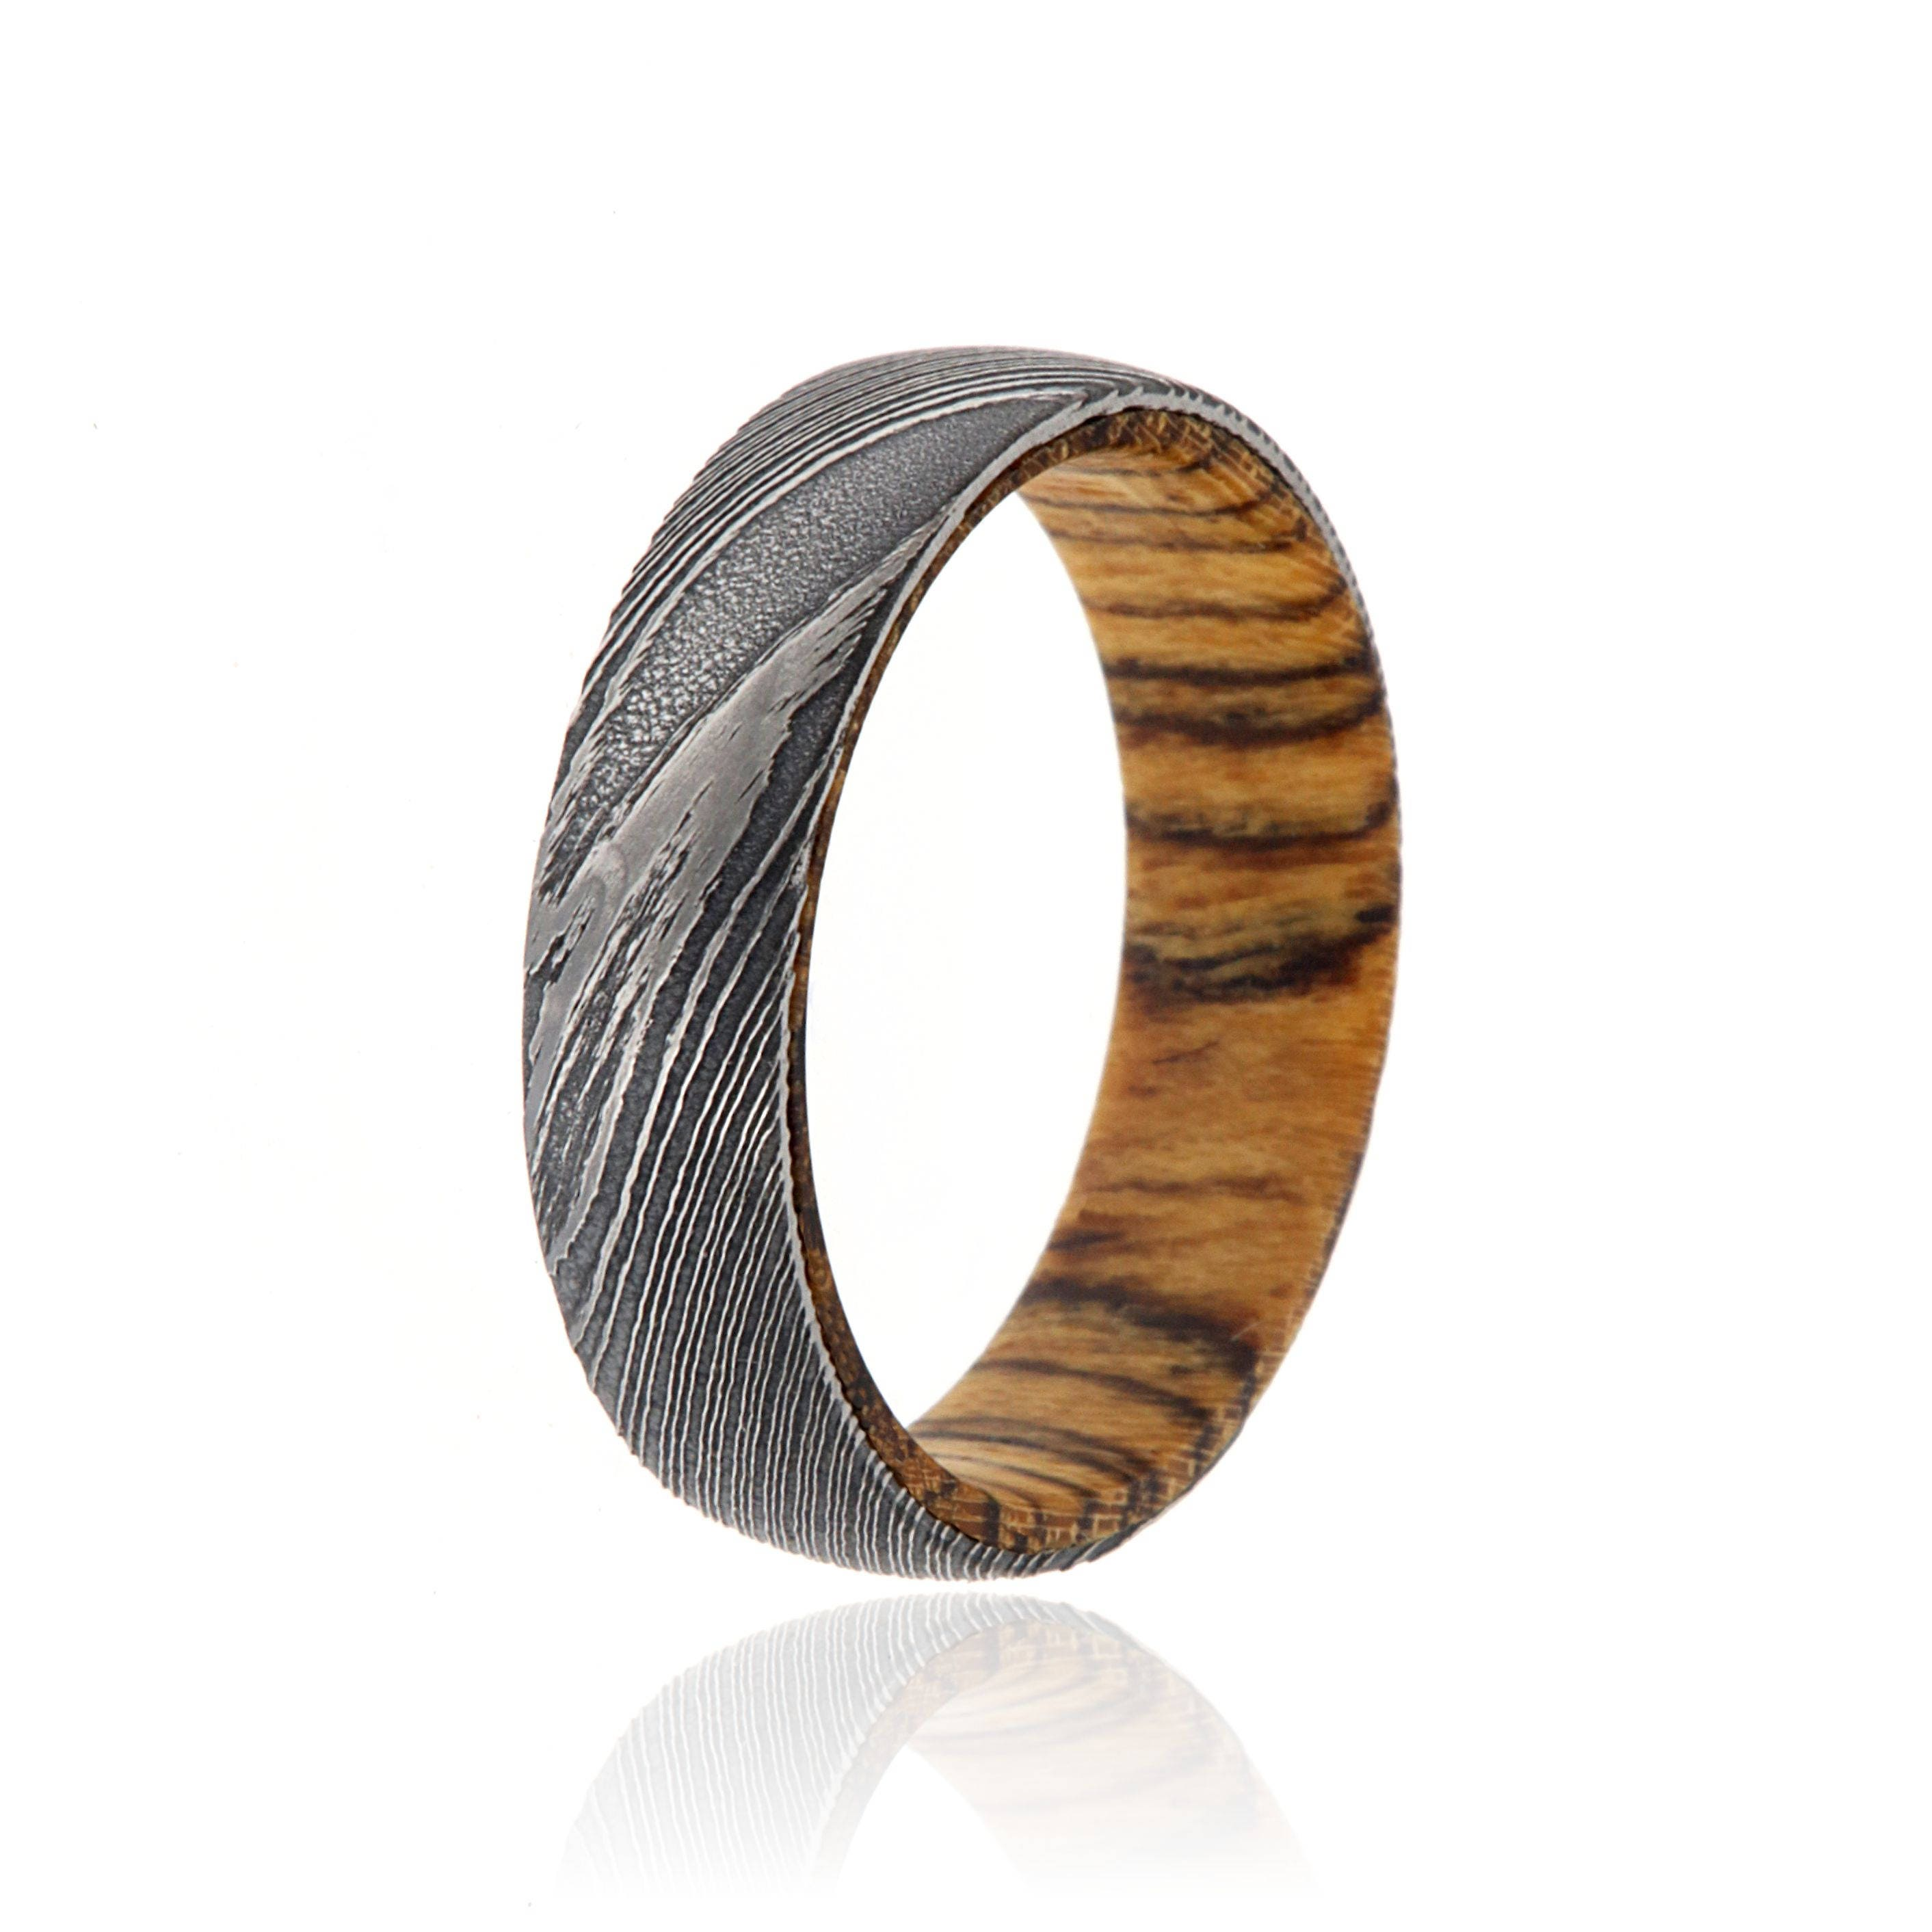 6mm Wide Damascus Steel Wedding Band Wedding Rings with a